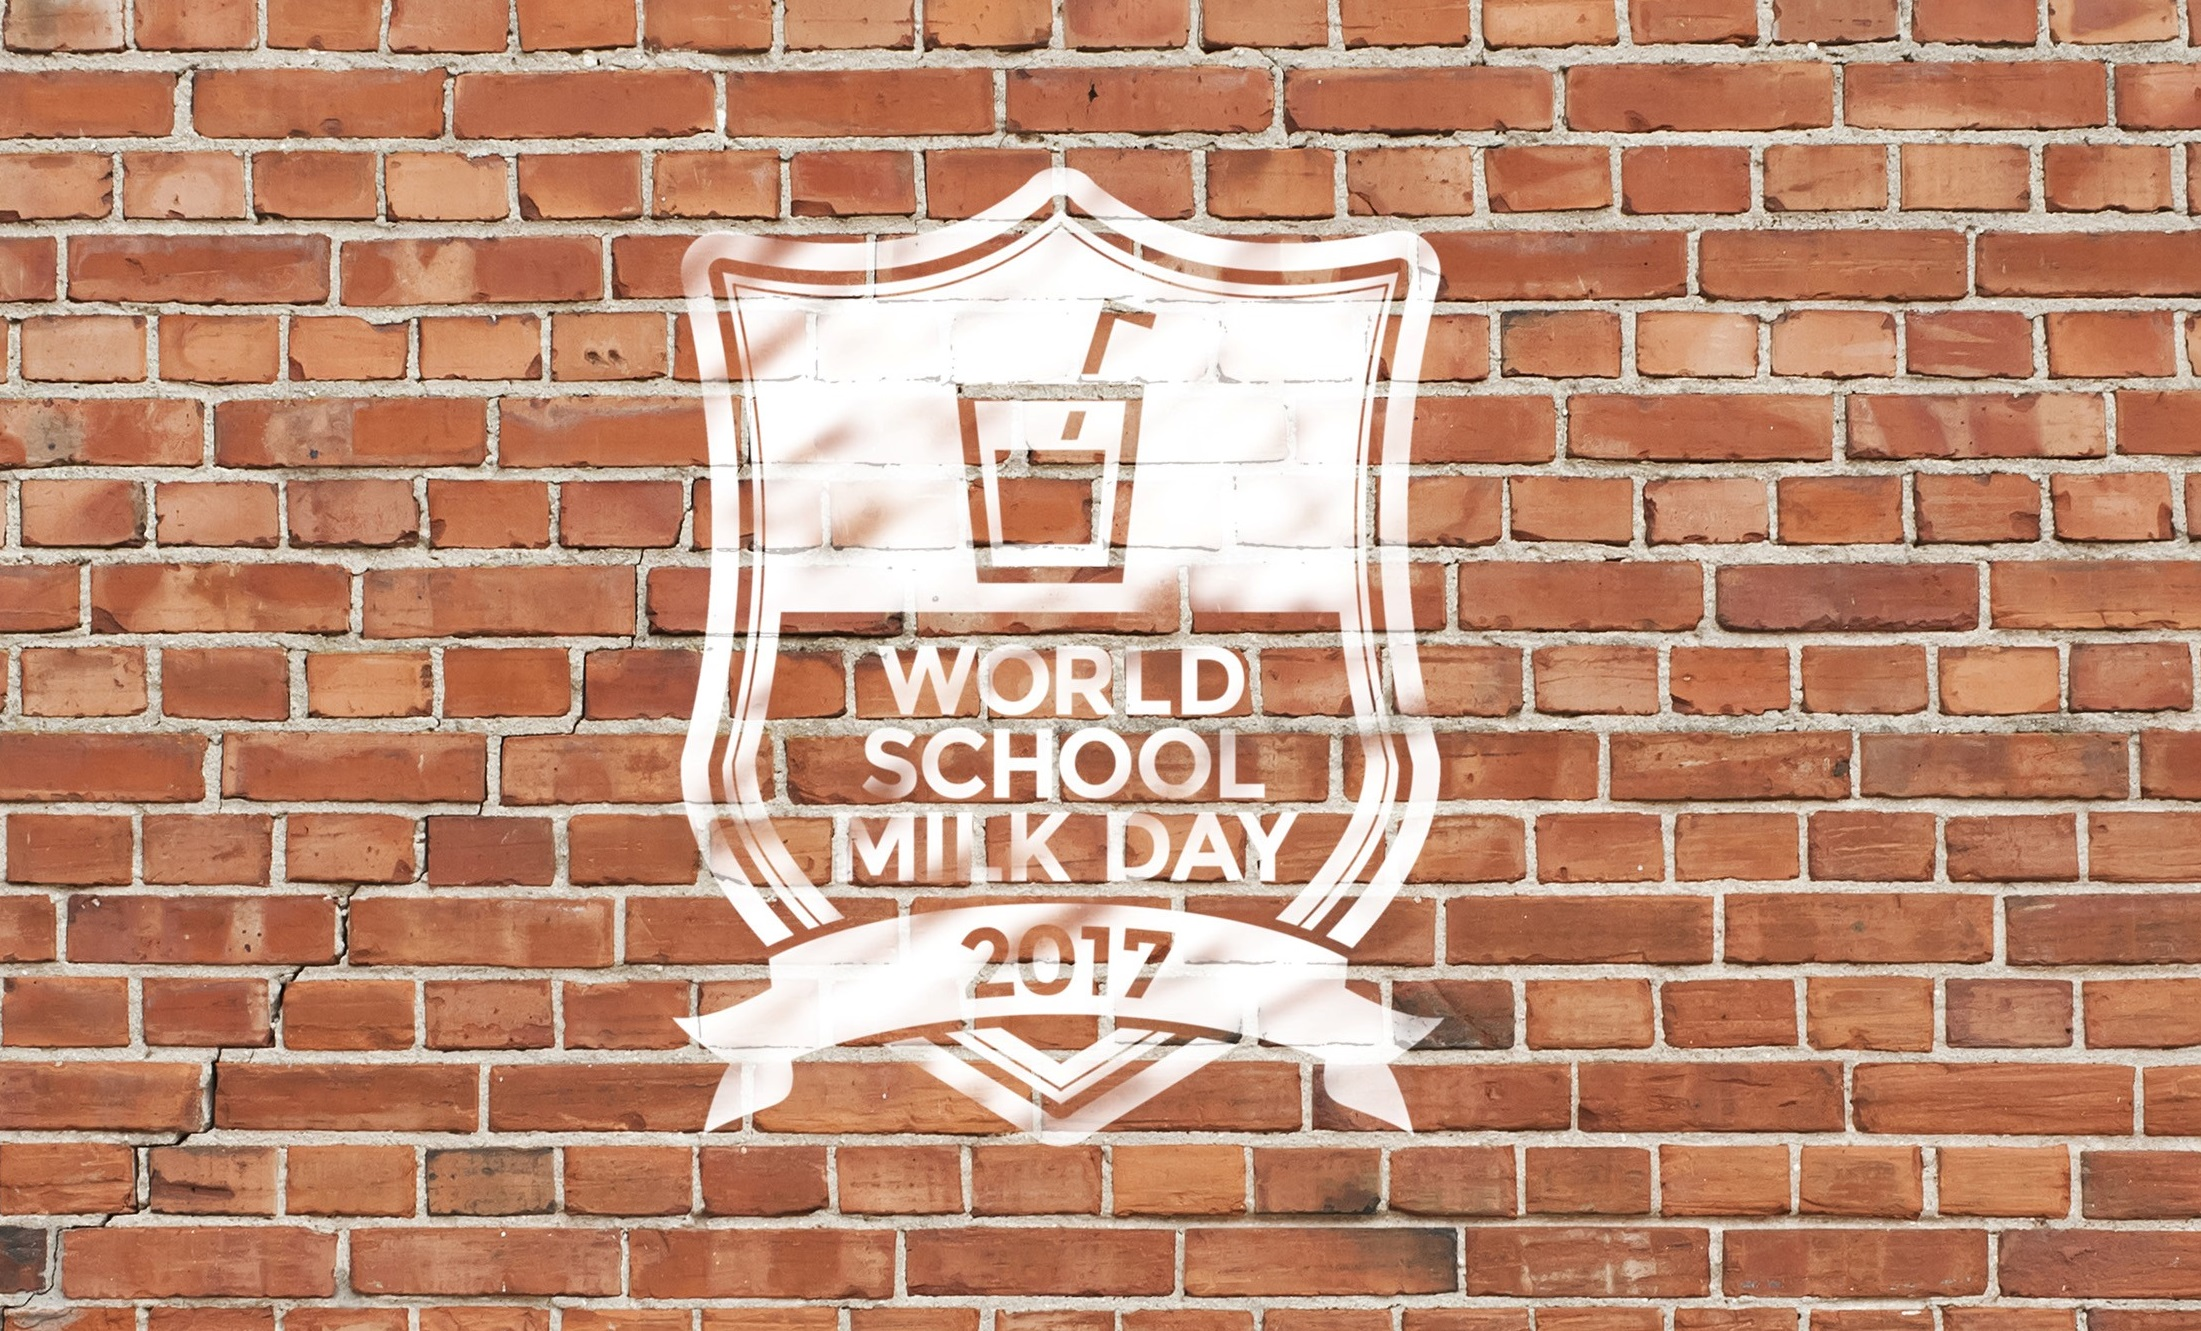 THE DAIRY COUNCIL LEADS MILK CELEBRATIONS ON WORLD SCHOOL MILK DAY